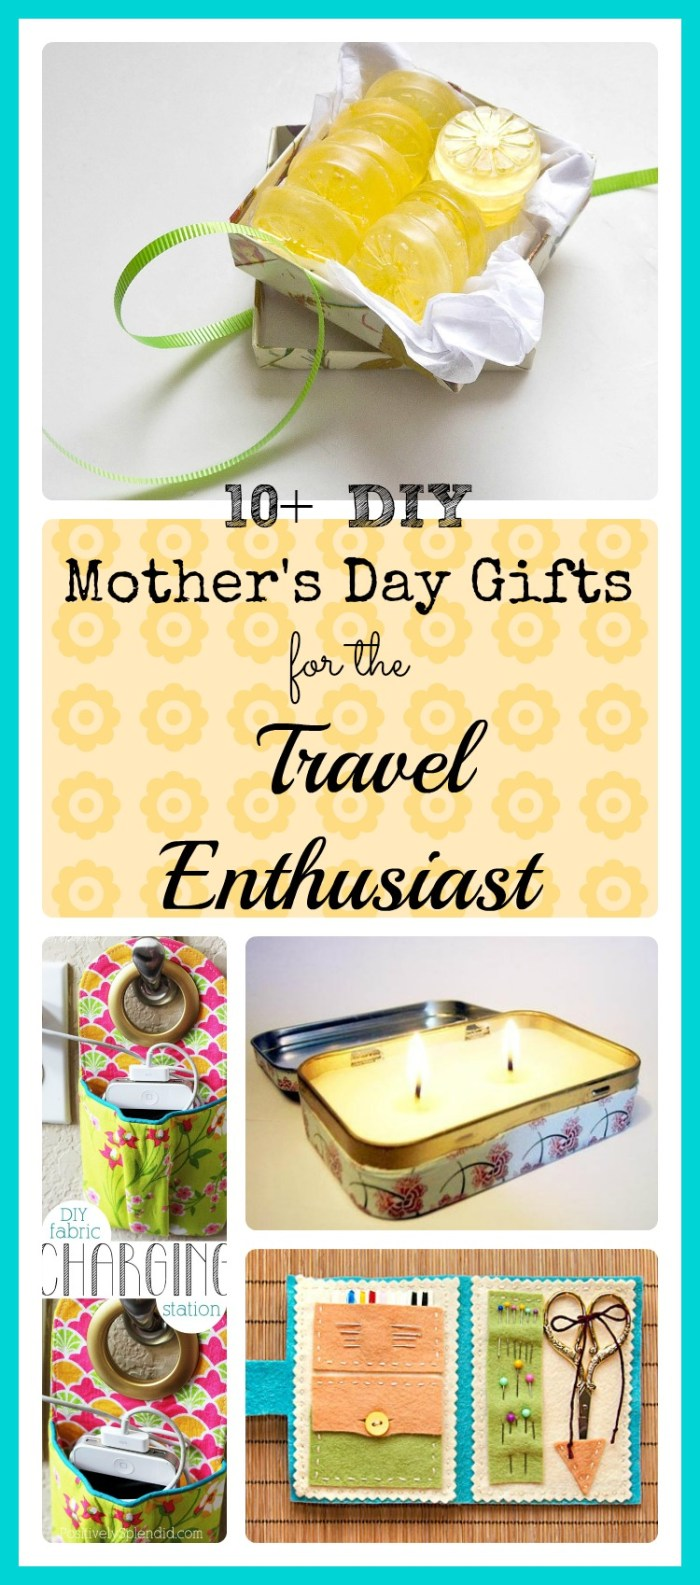 10+ DIY Mother's Day Gifts for the Travel Enthusiast